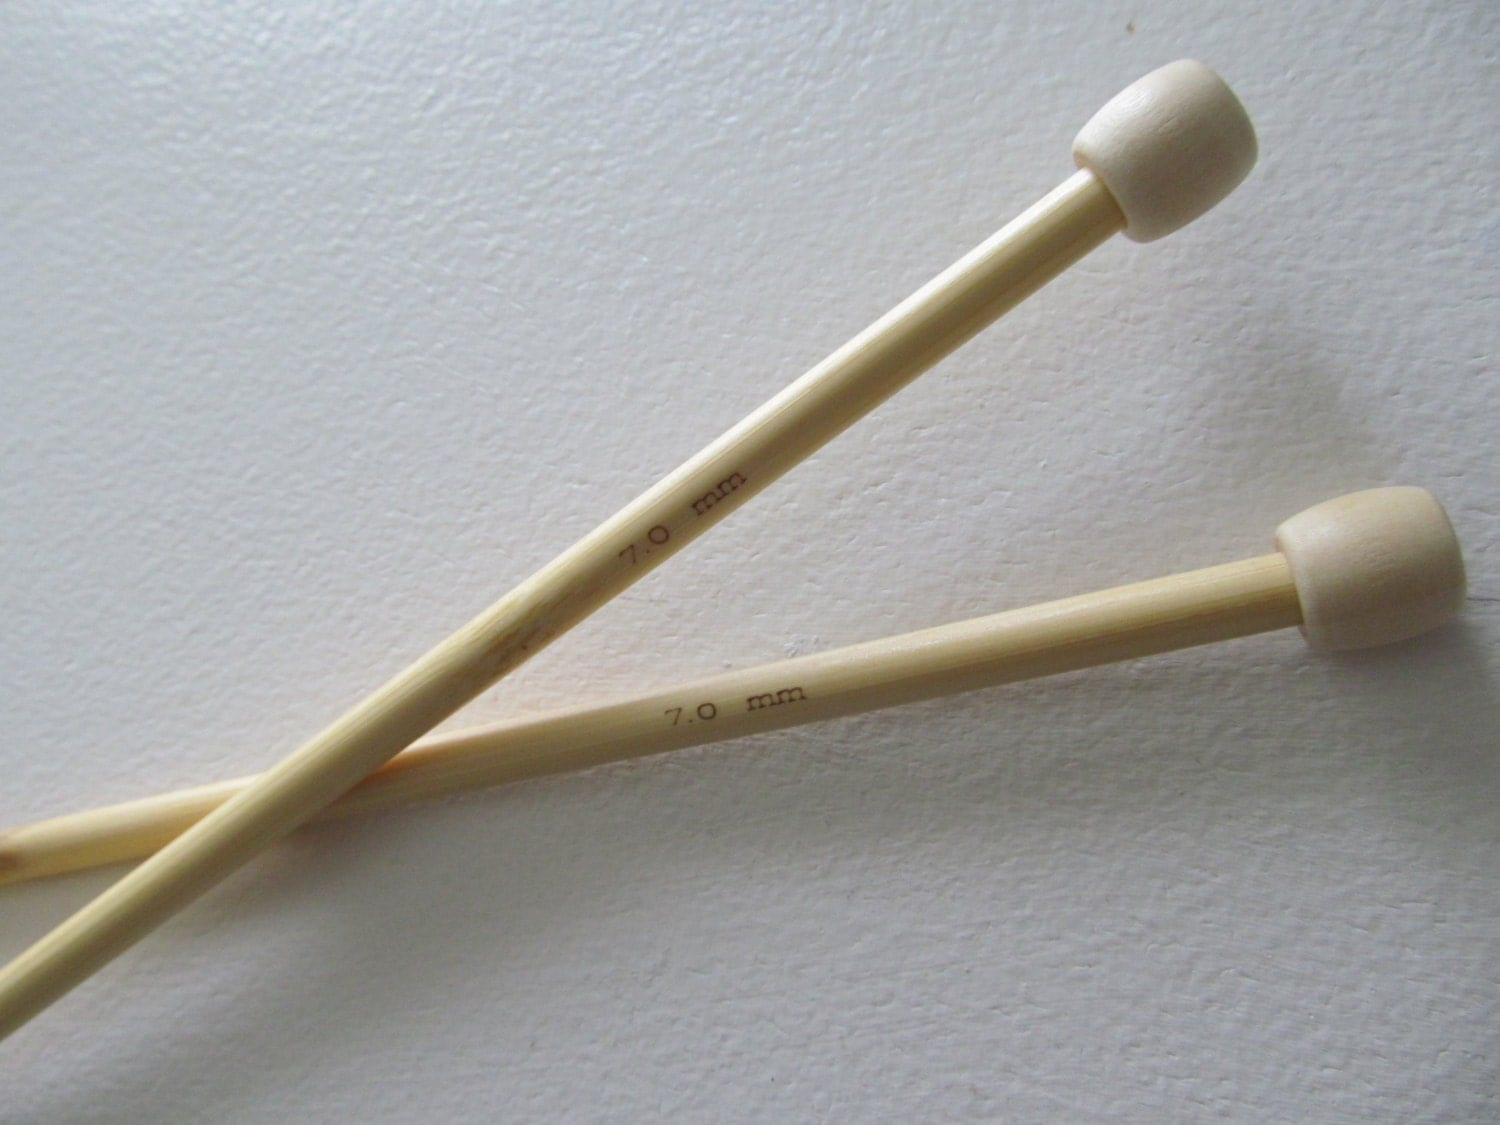 Knitting Needles Mm : Size knitting needles mm bamboo wooden by lacywork